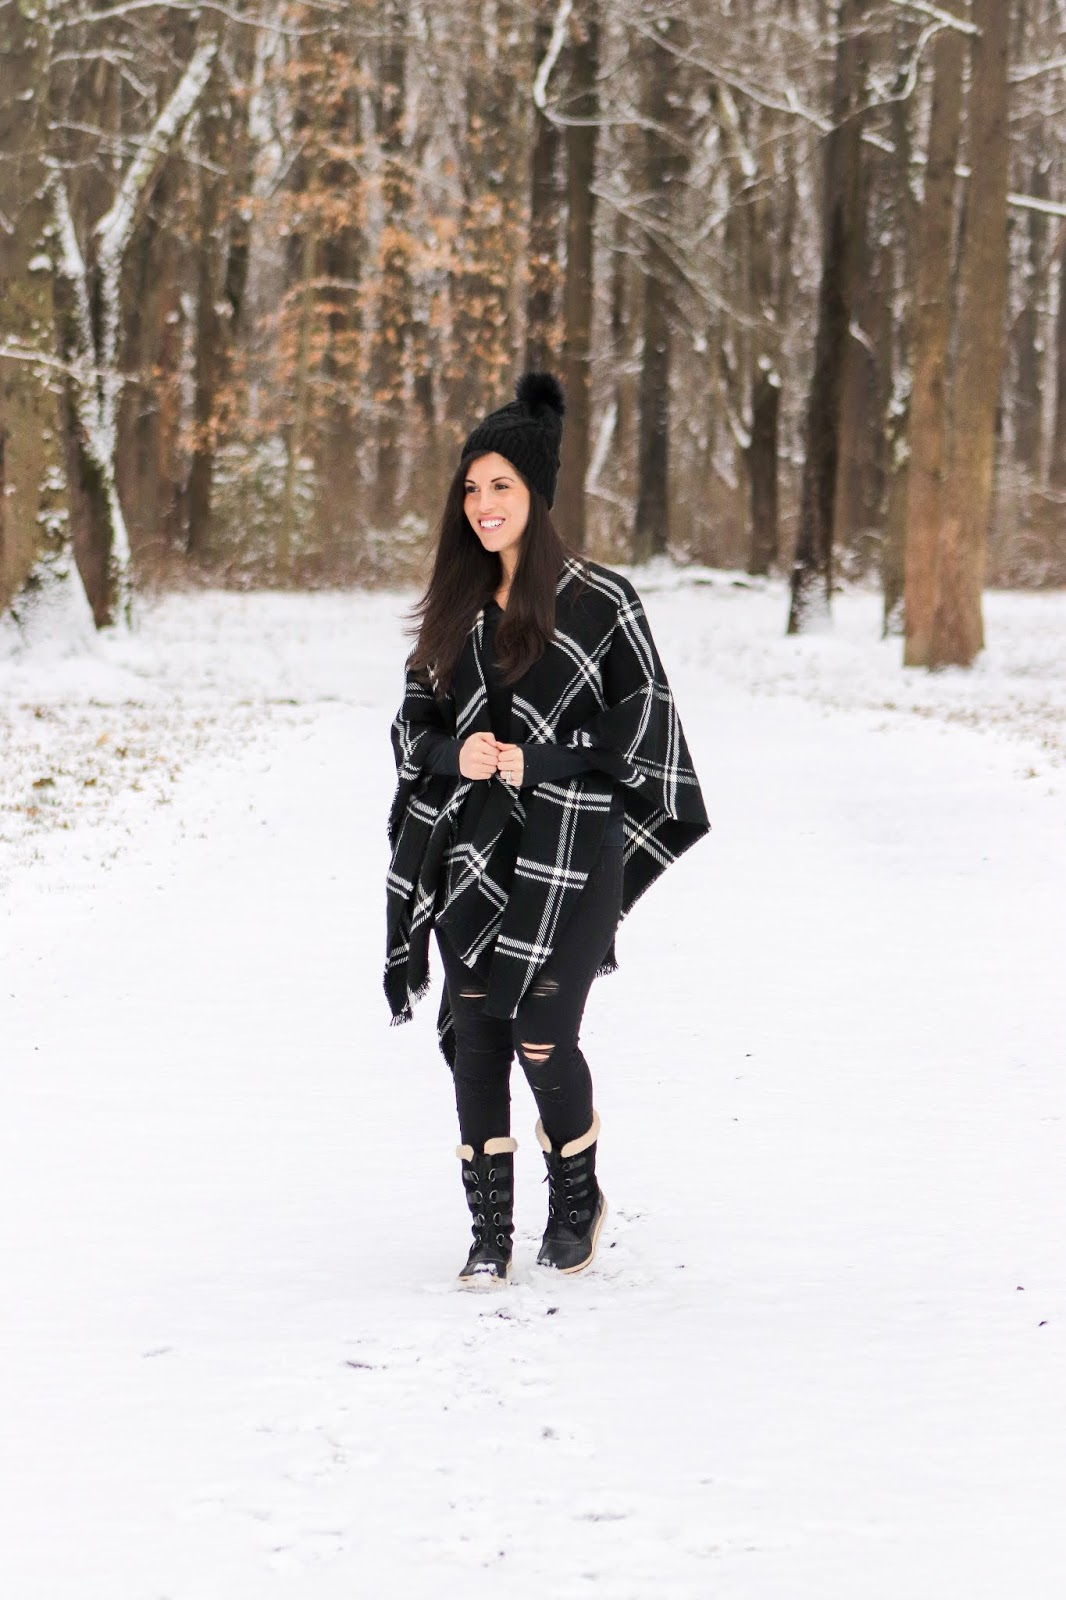 c9990ad016c7 Beautifully Candid: Winter Outfit Idea-Blanket Love